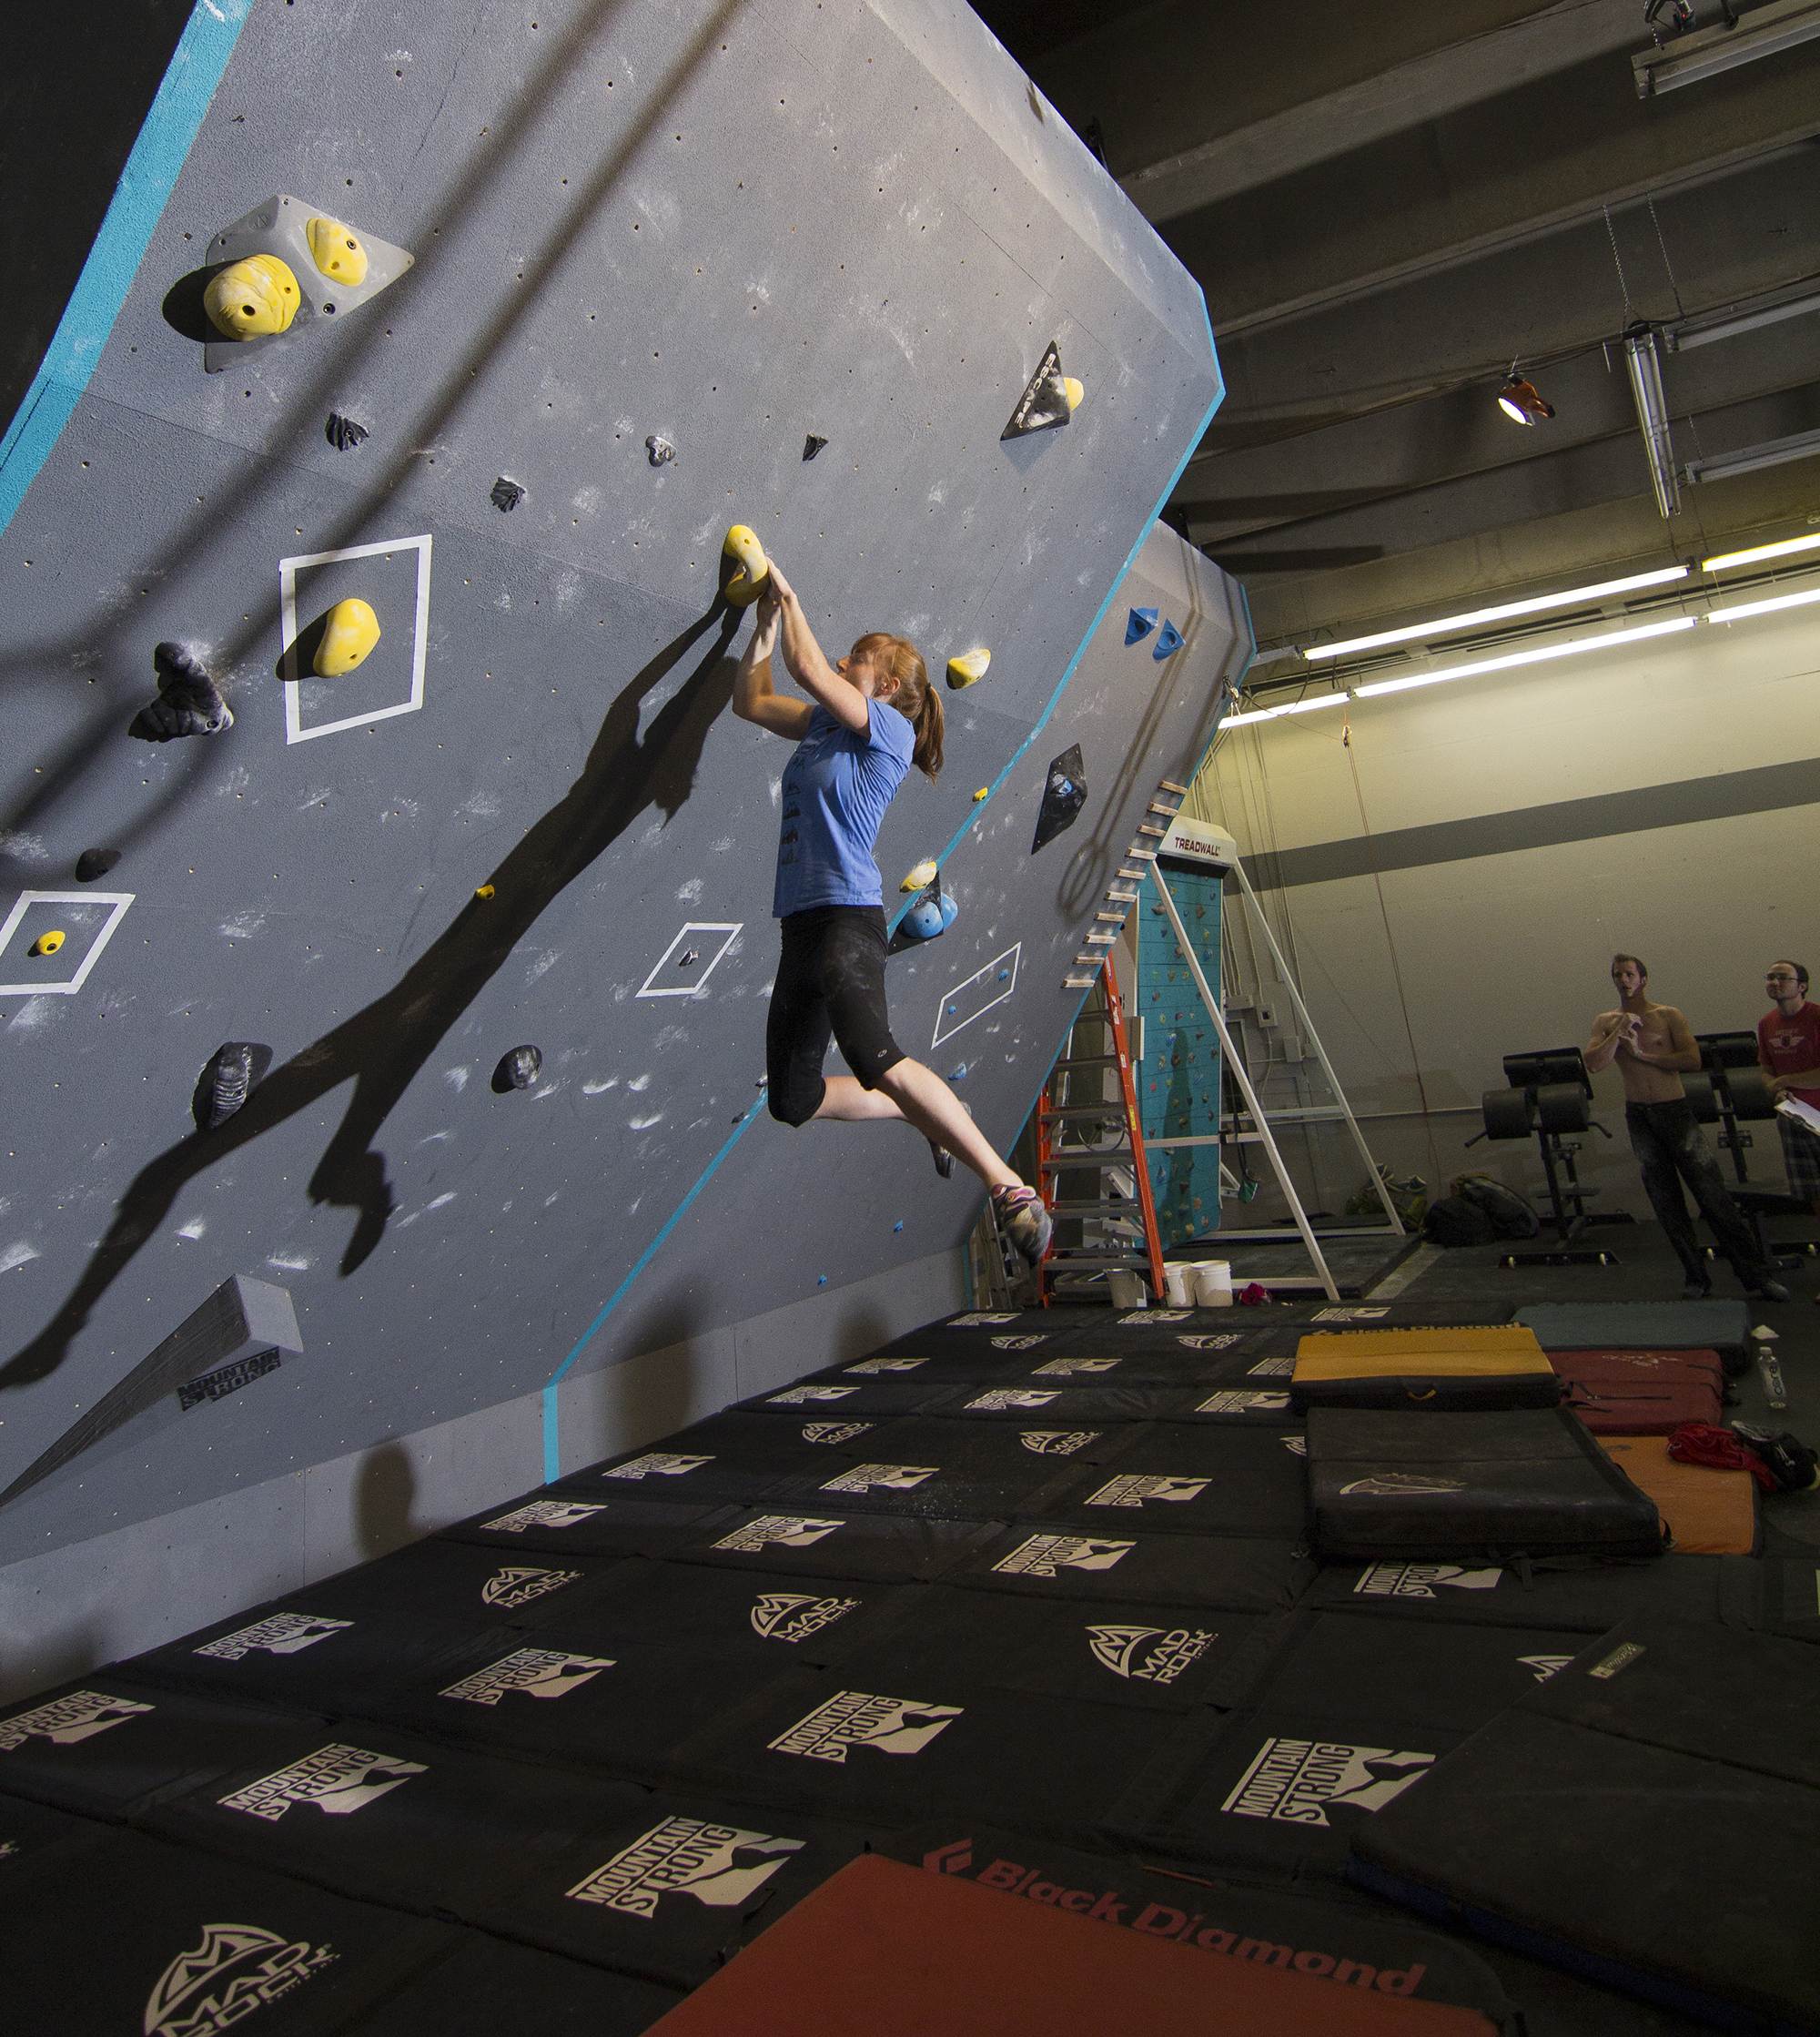 Crossfit Gloves For Rope Climbing: Climbers' CrossFit Gym Grabs Hold Of New Market